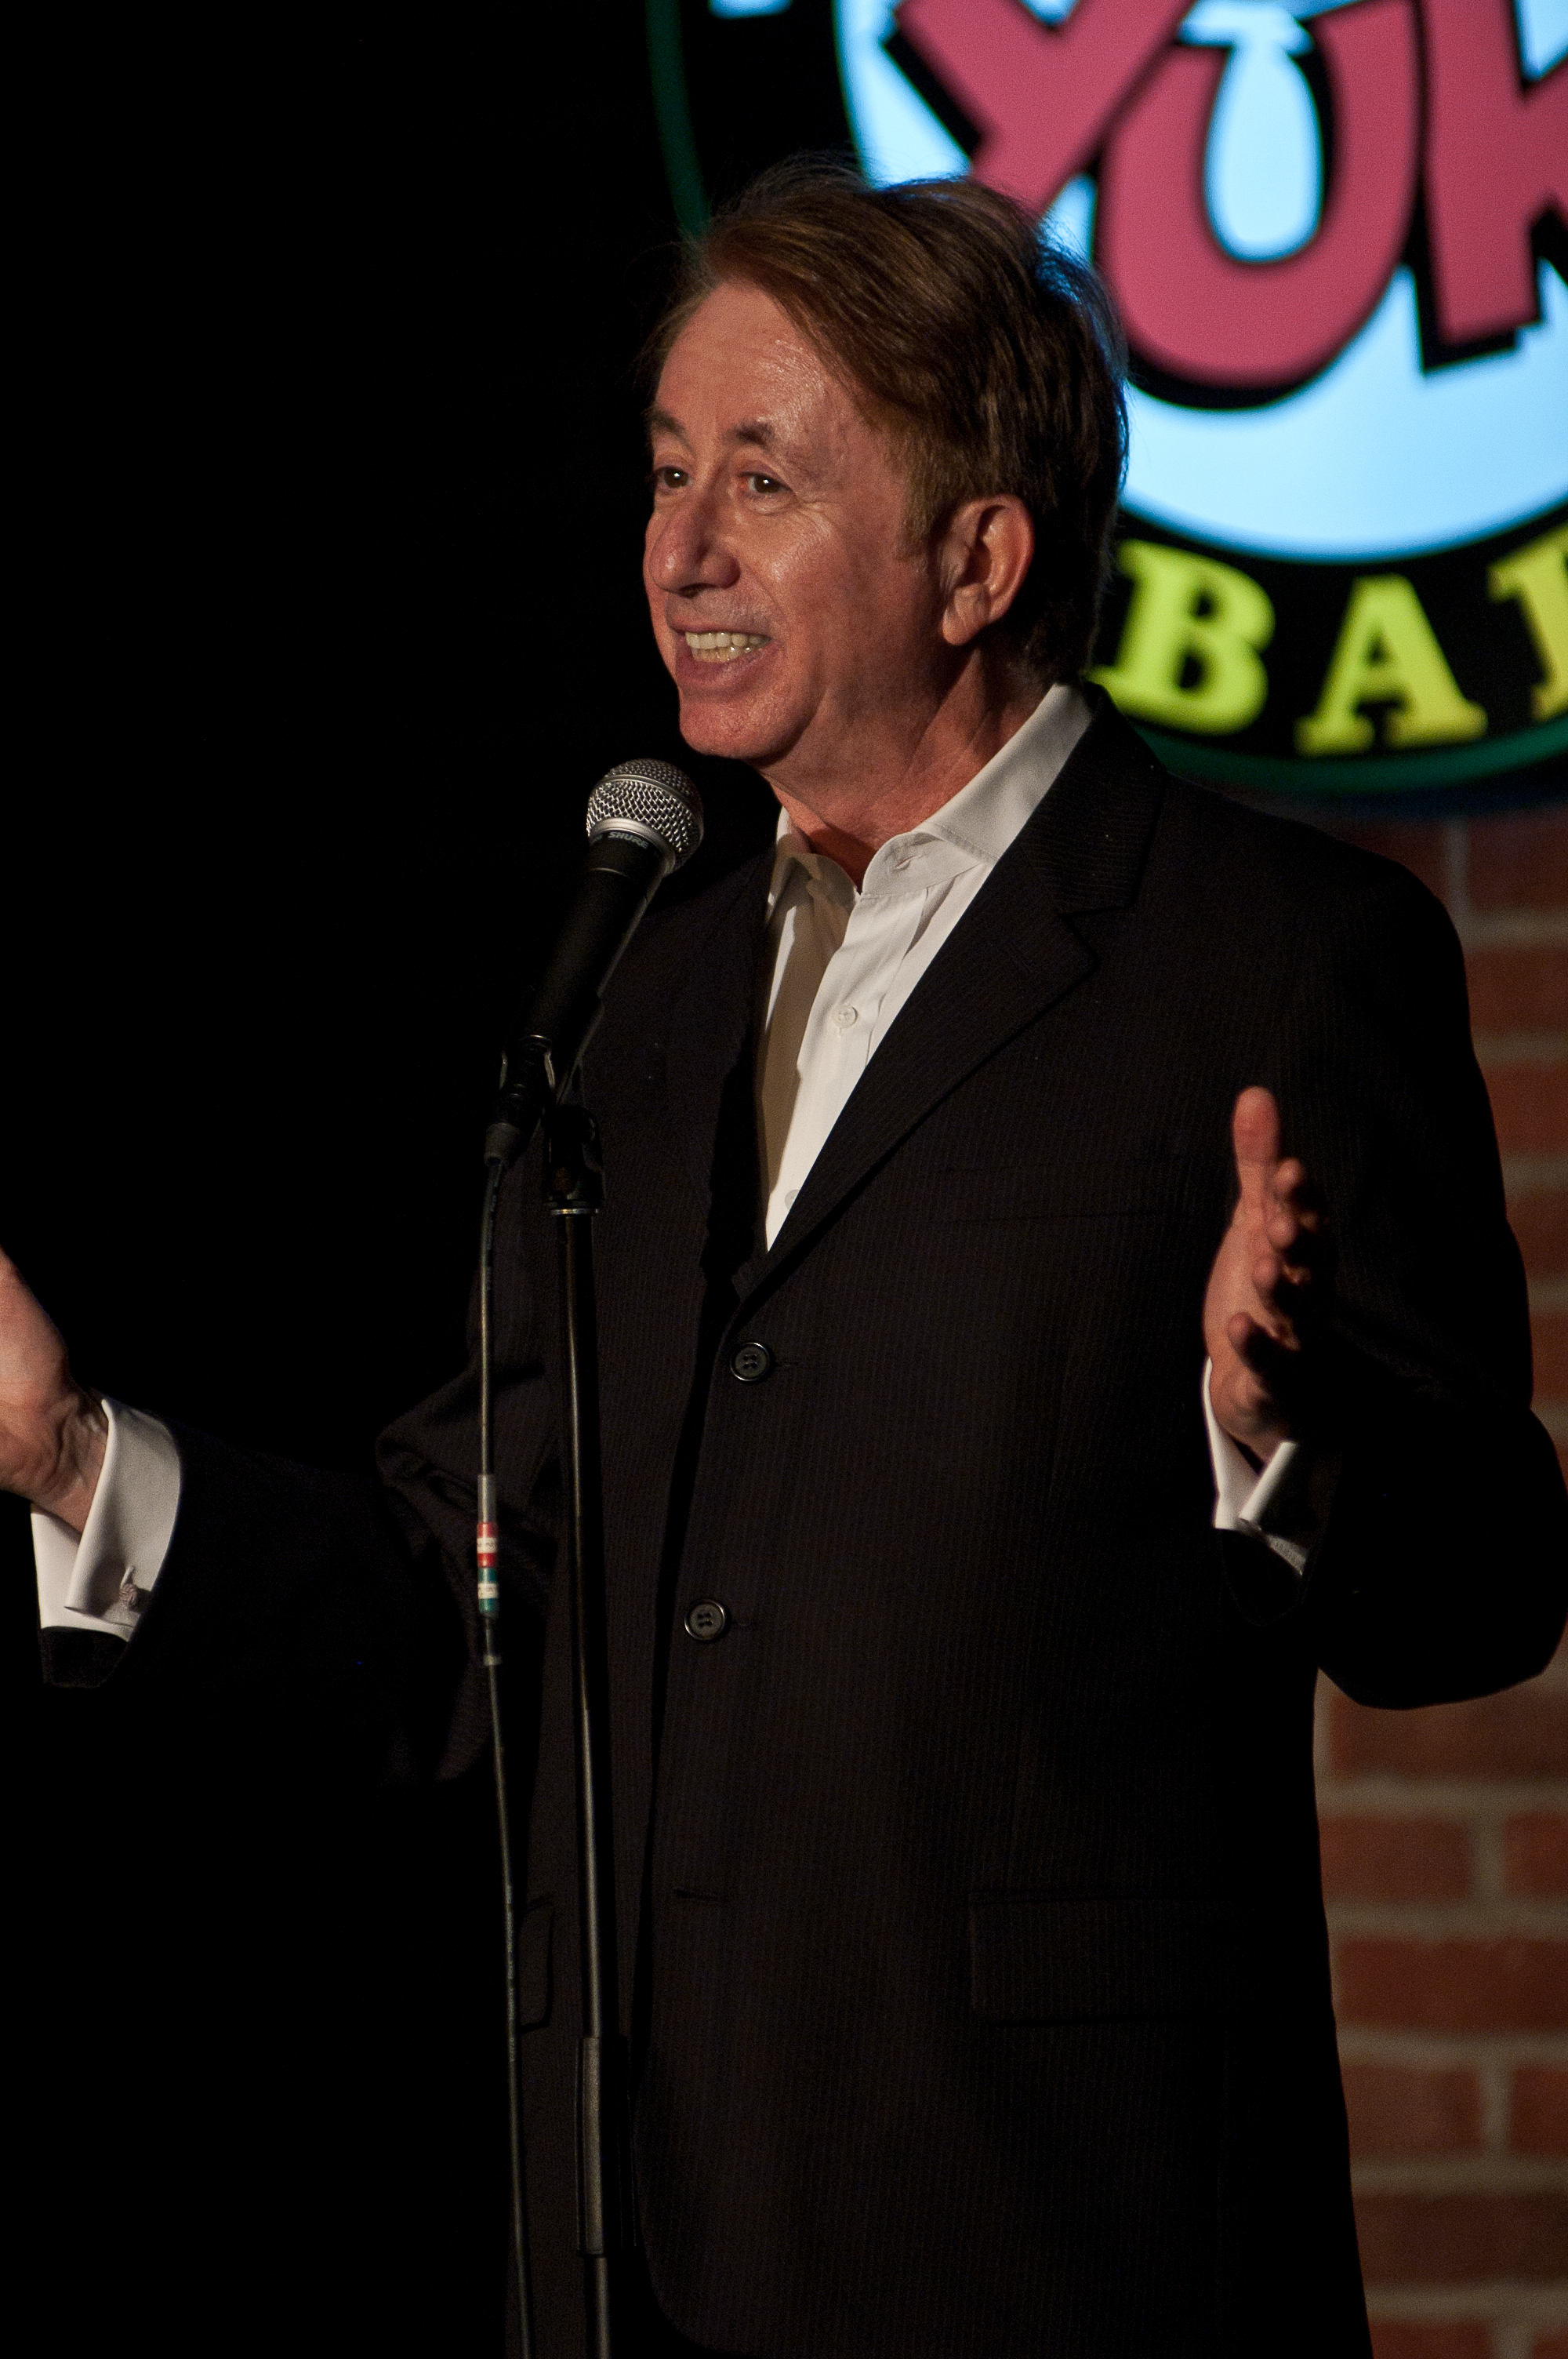 Owner and Co-Founder Mark Breslin (Photo by Vad)